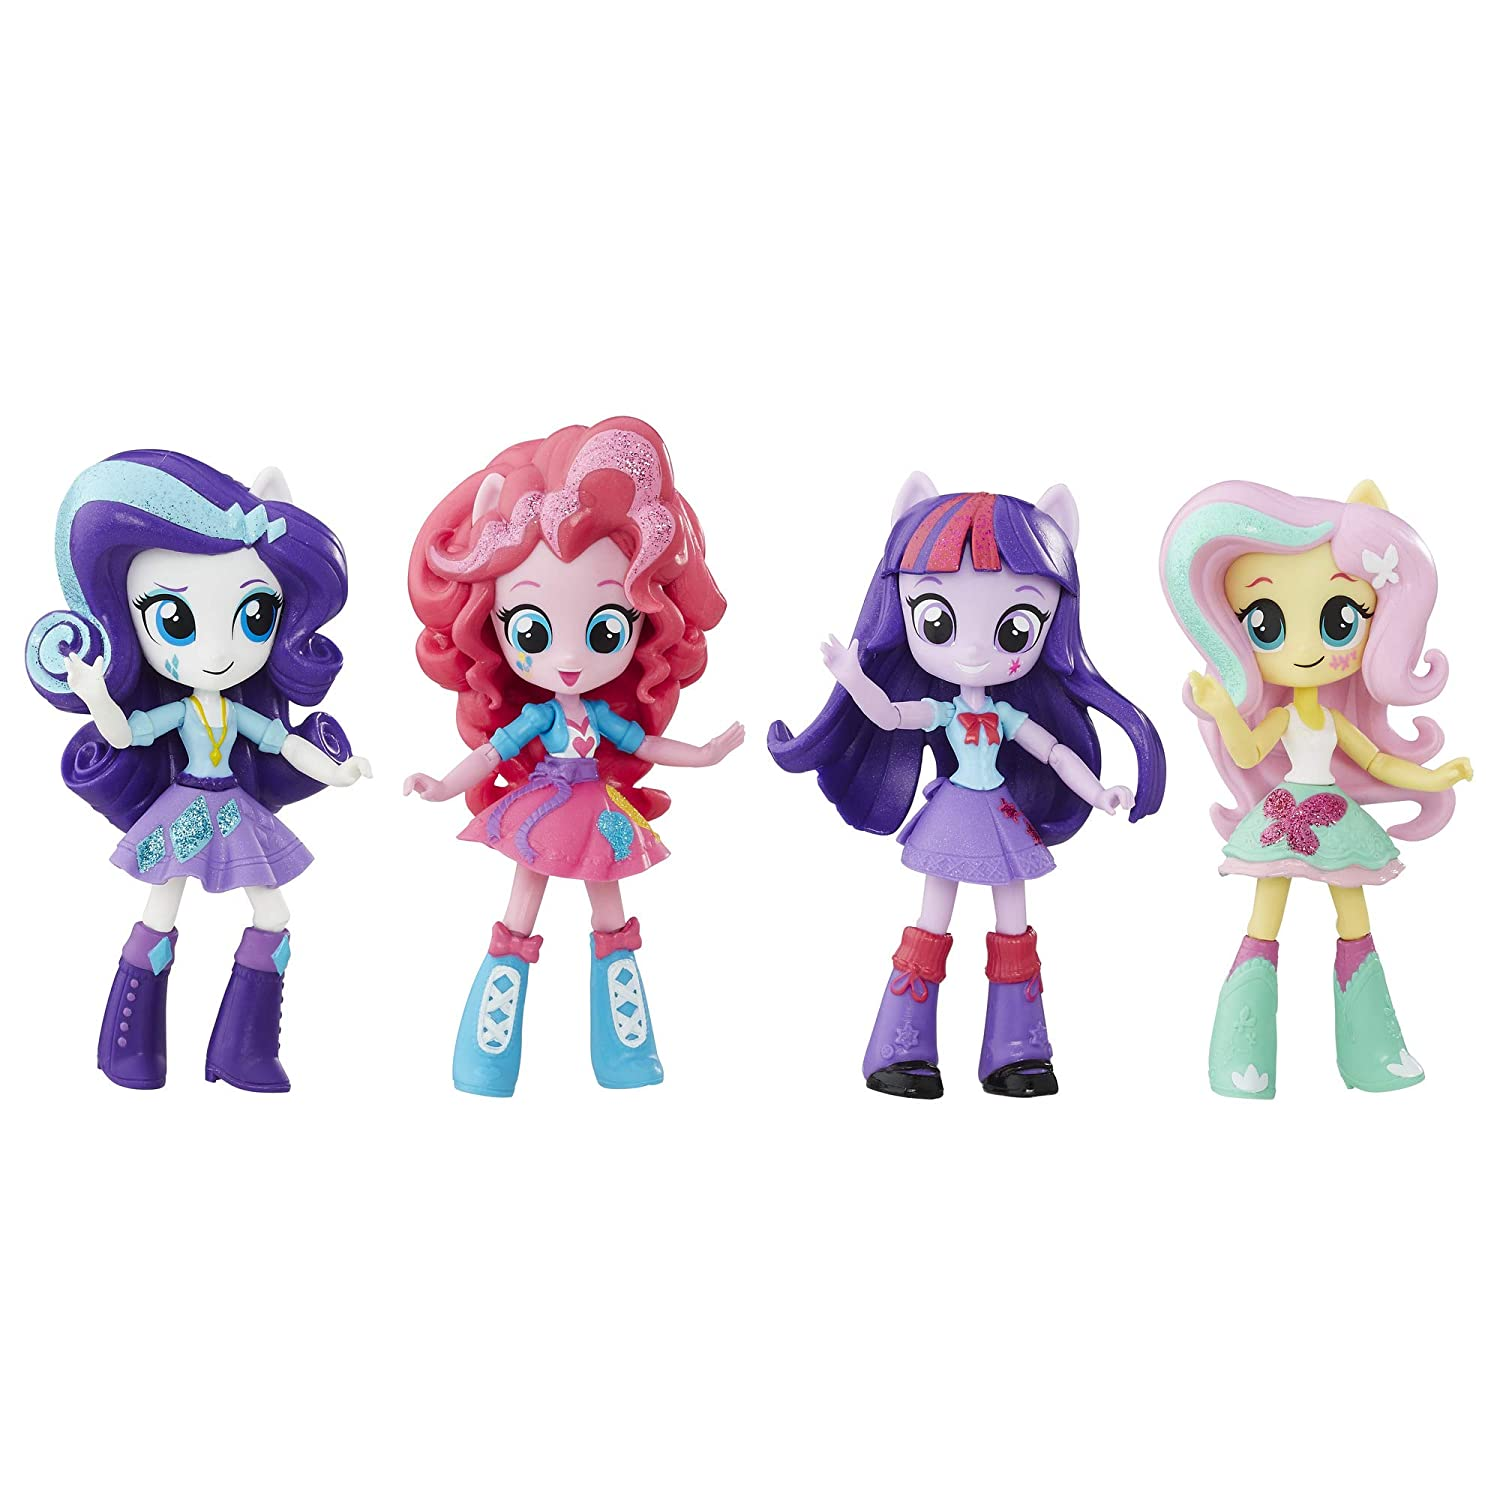 My Little Pony Twilight Sparkle, Pinkie Pie, Rarity & Fluttershy Toys - Equestria Girls 4.5-Inch Mini-Dolls, Ages 5 and Up